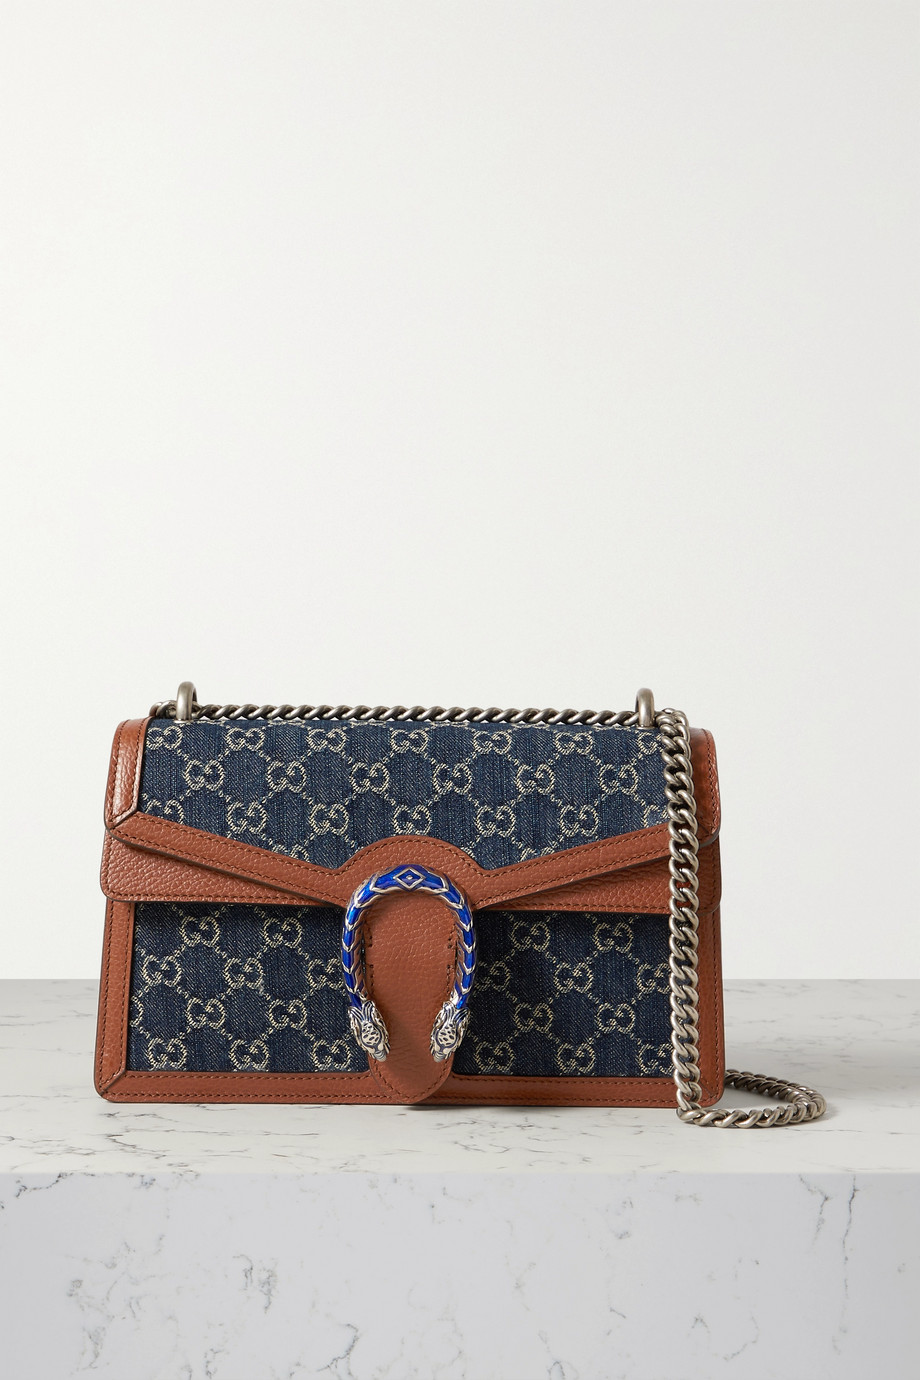 GUCCI + NET SUSTAIN Dionysus small leather-trimmed organic denim shoulder bag